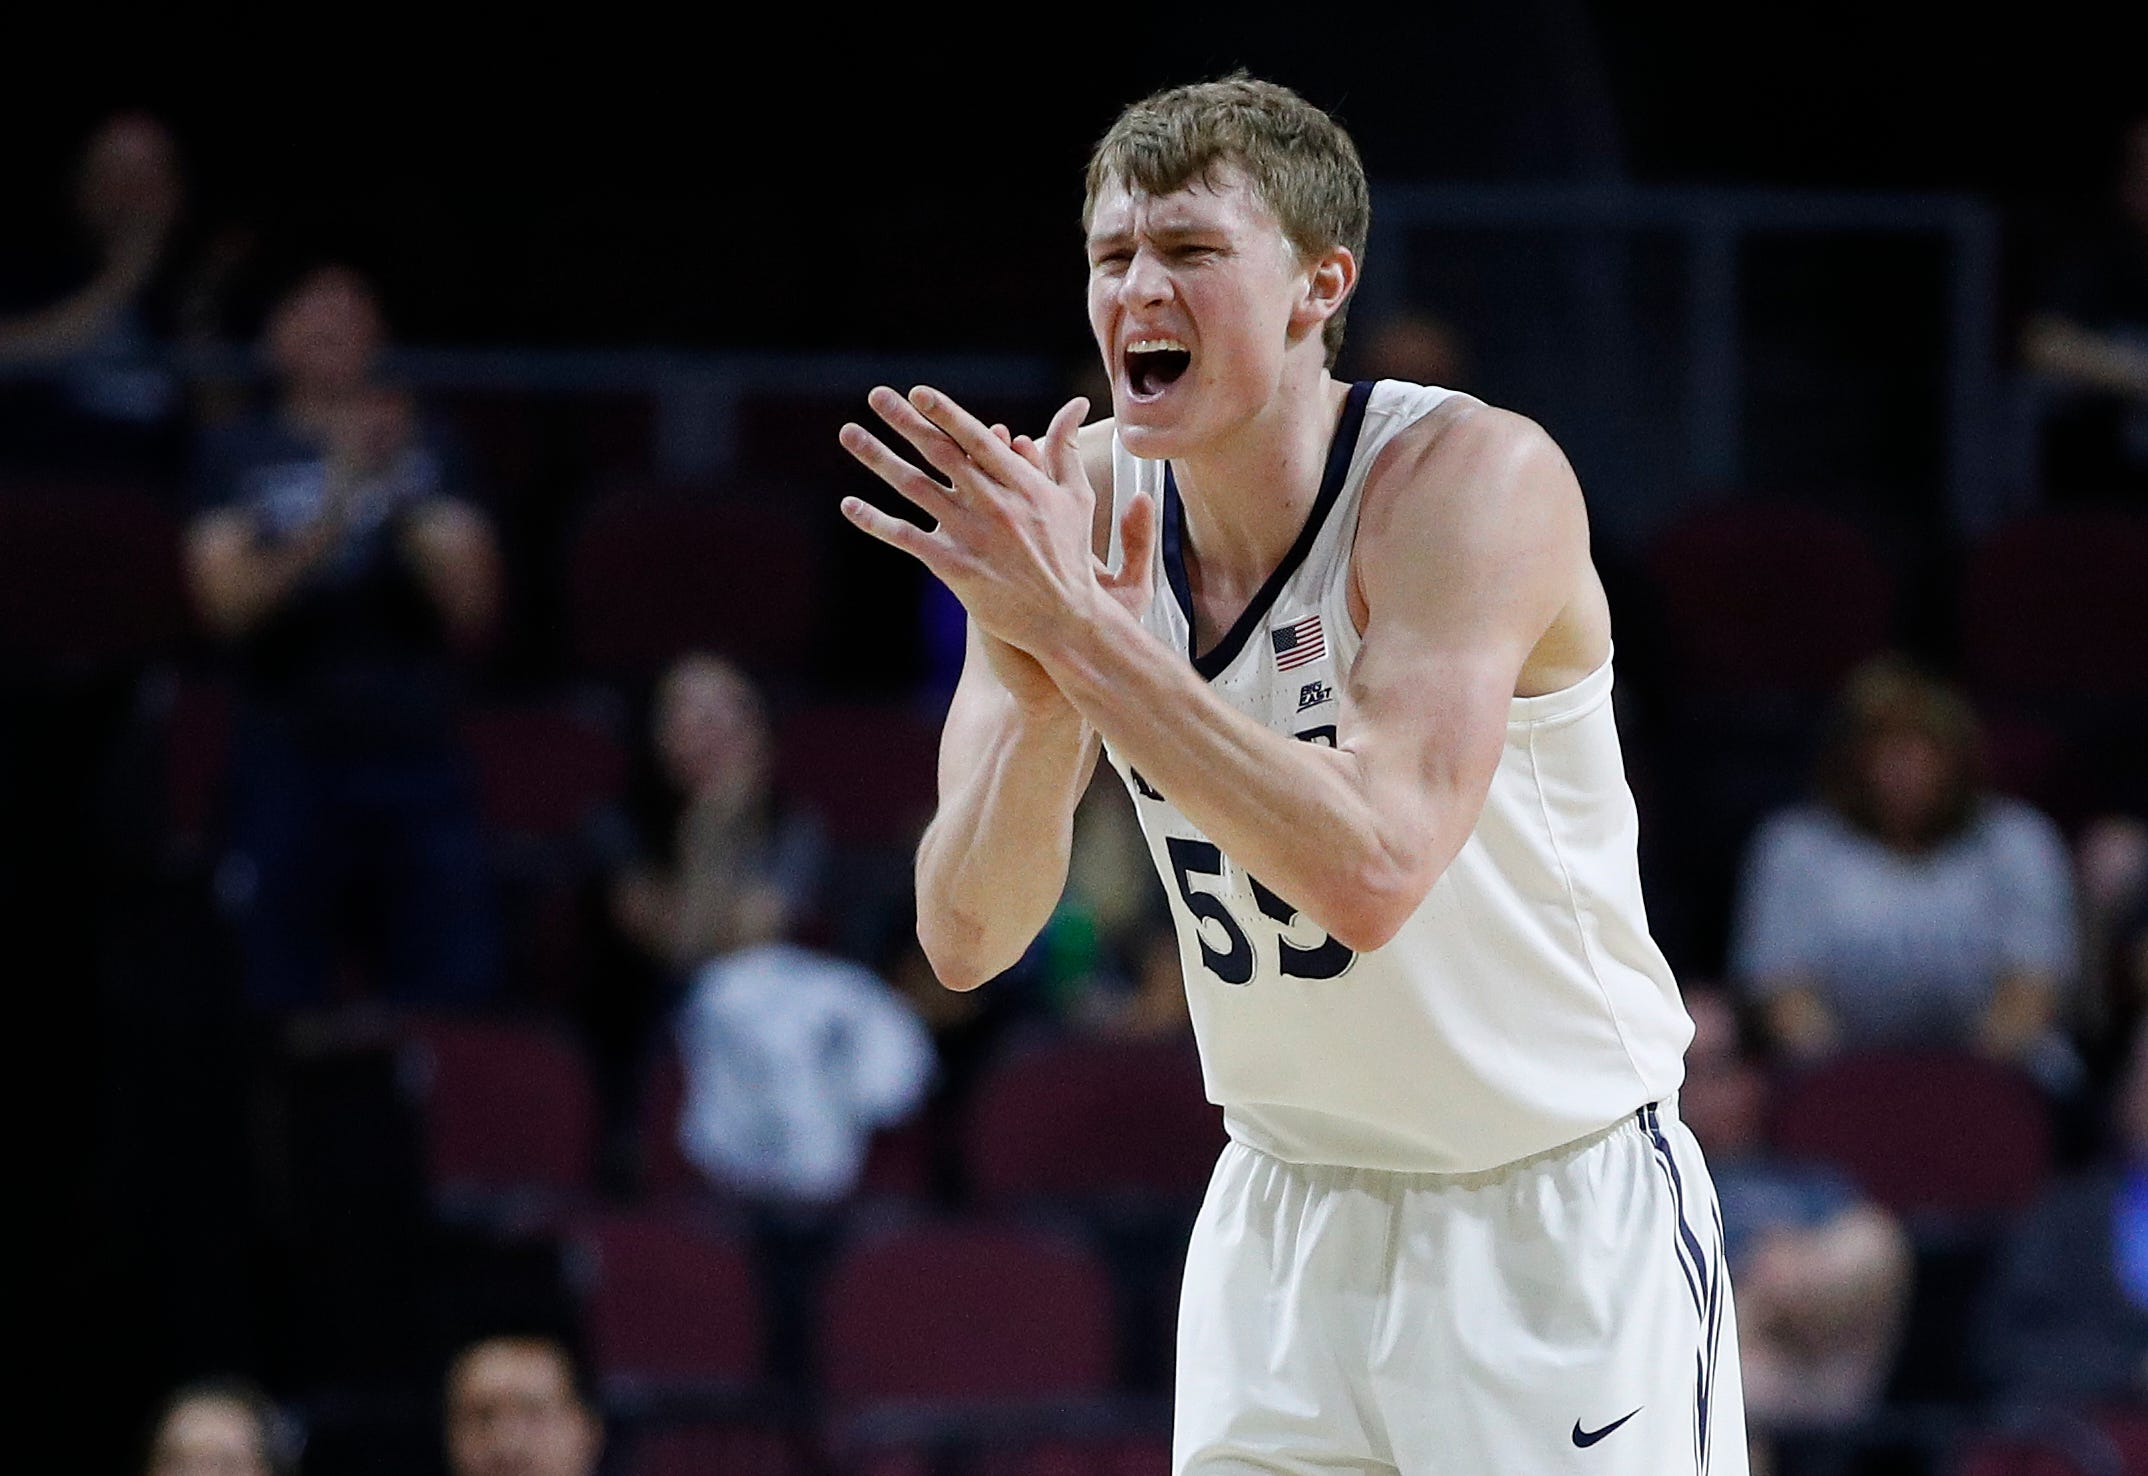 Xavier's J.P. Macura reacts after a play against Arizona